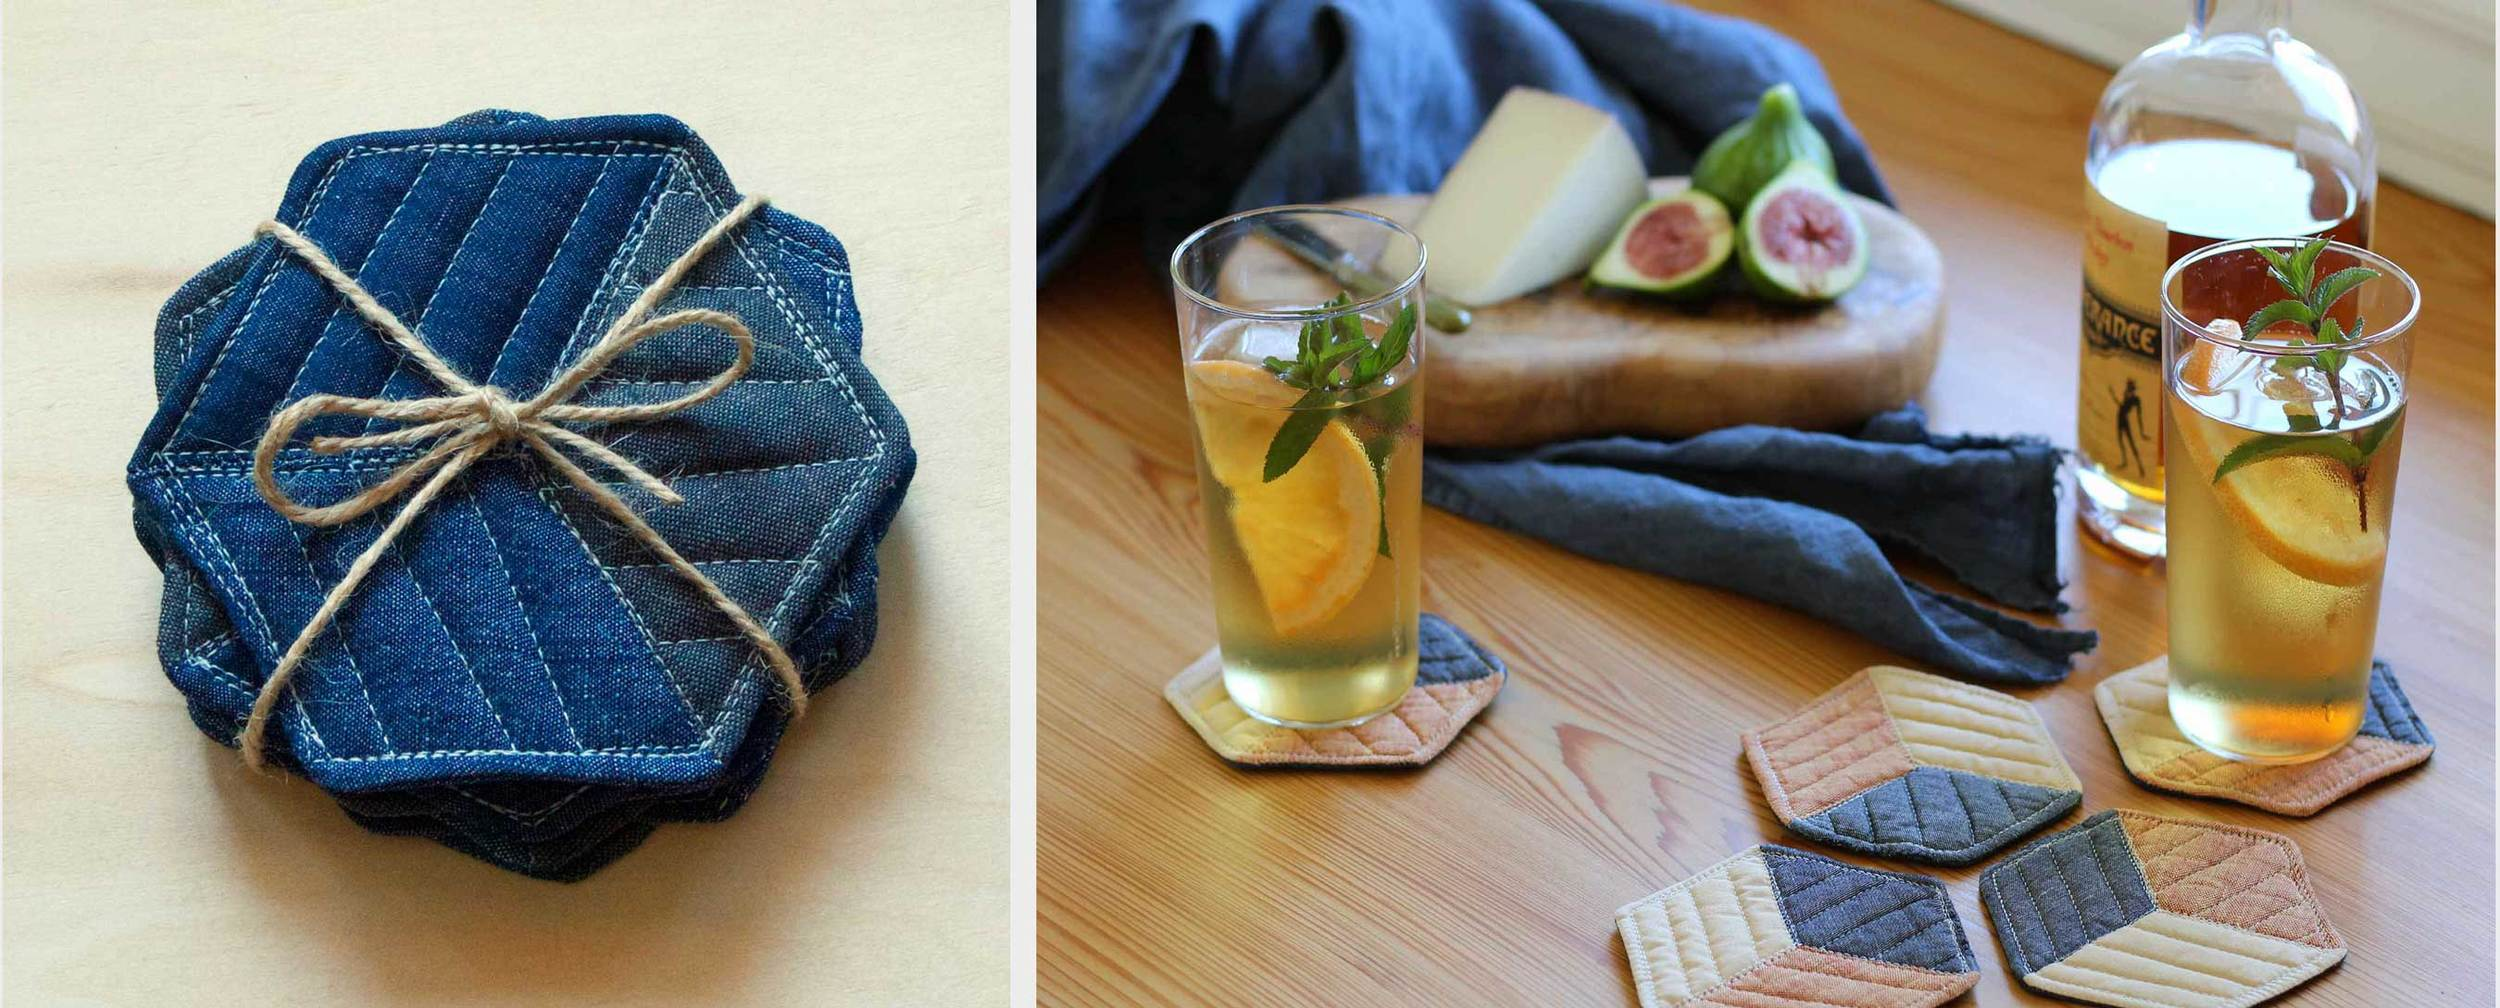 Handmade quilted coasters make a great gift and protect your table from those sweating cocktail glasses in summer.  Instructions to make them at Thread & Whisk